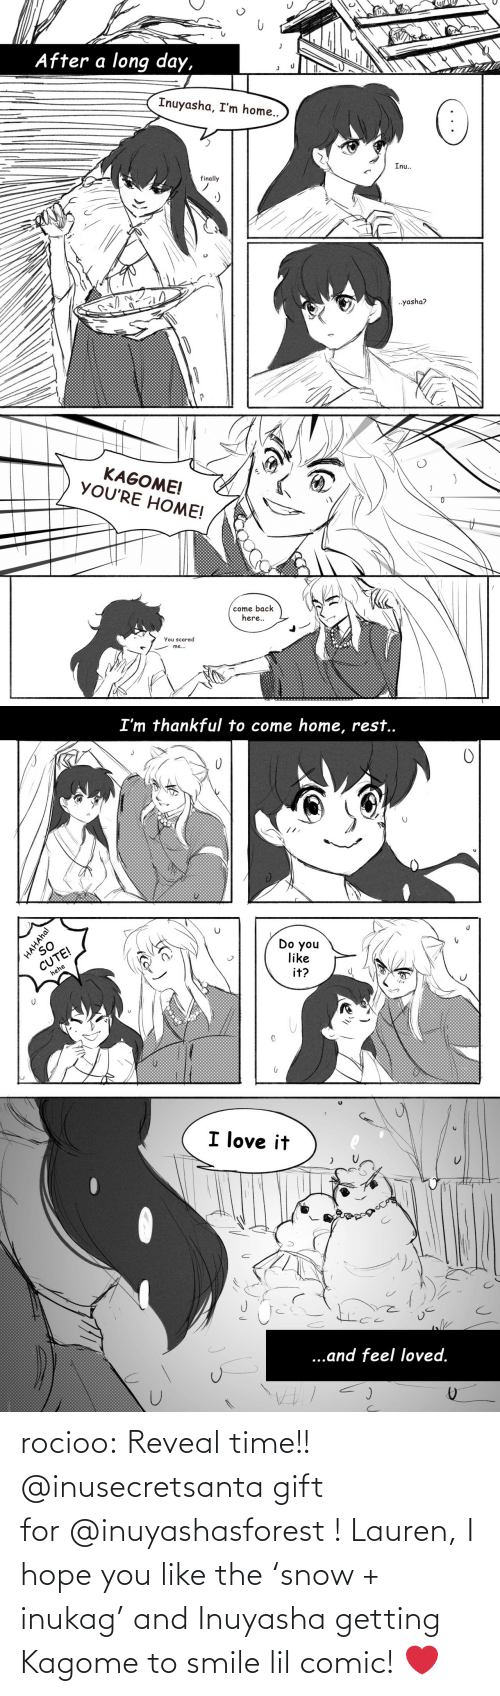 InuYasha: rocioo: Reveal time!! @inusecretsanta gift for @inuyashasforest ! Lauren, I hope you like the 'snow + inukag' and Inuyasha getting Kagome to smile lil comic! ❤